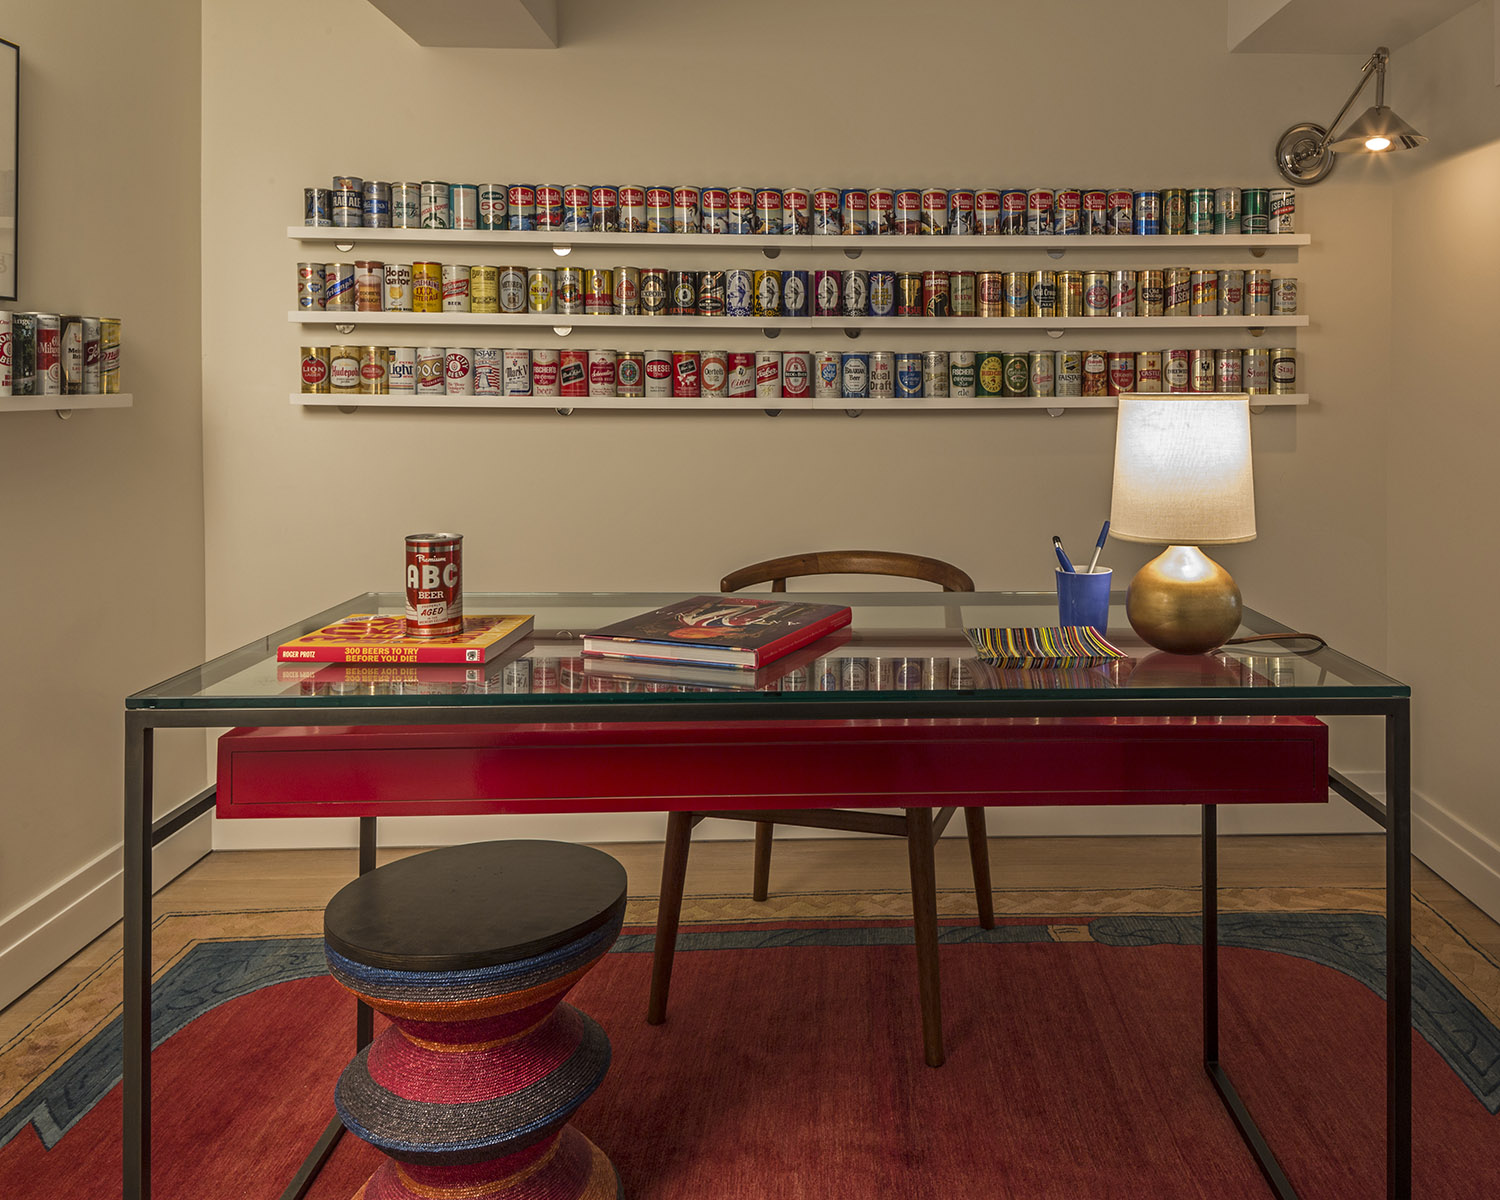 A total of 145 1970s beer cans are the backdrop for this modern home office. By Scott Sanders